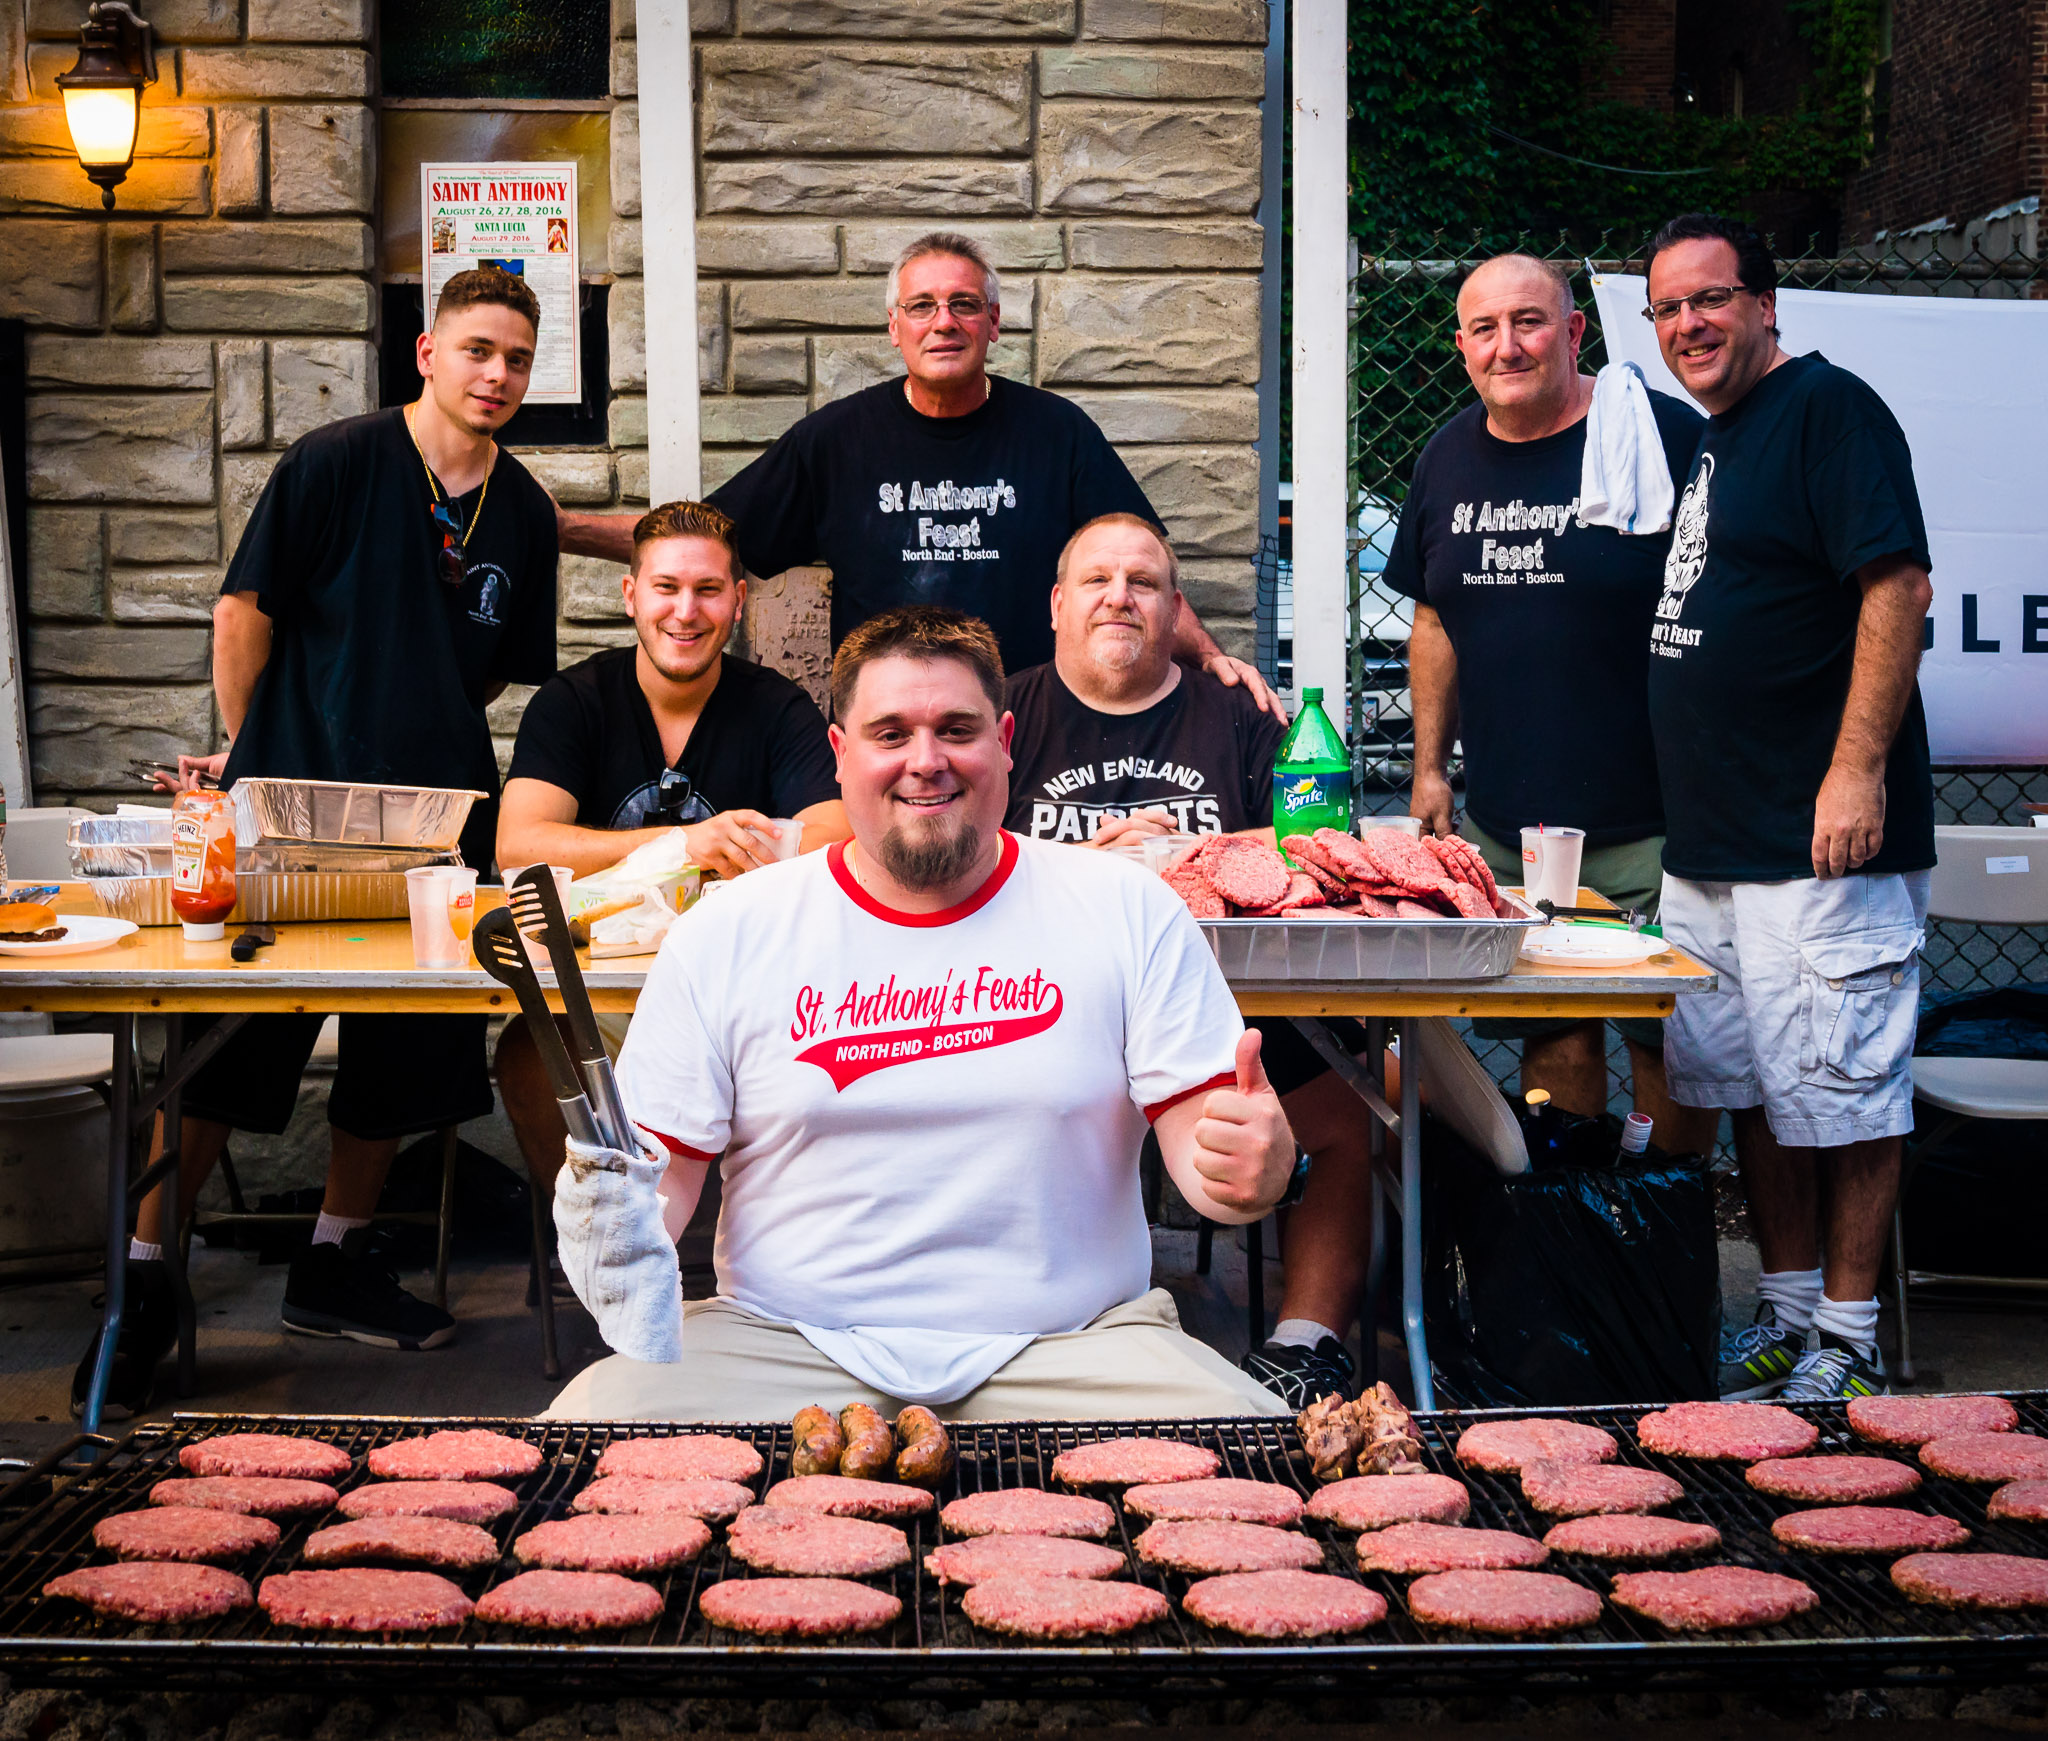 Neighbors Night at St Anthony's Feast - August 2016-54